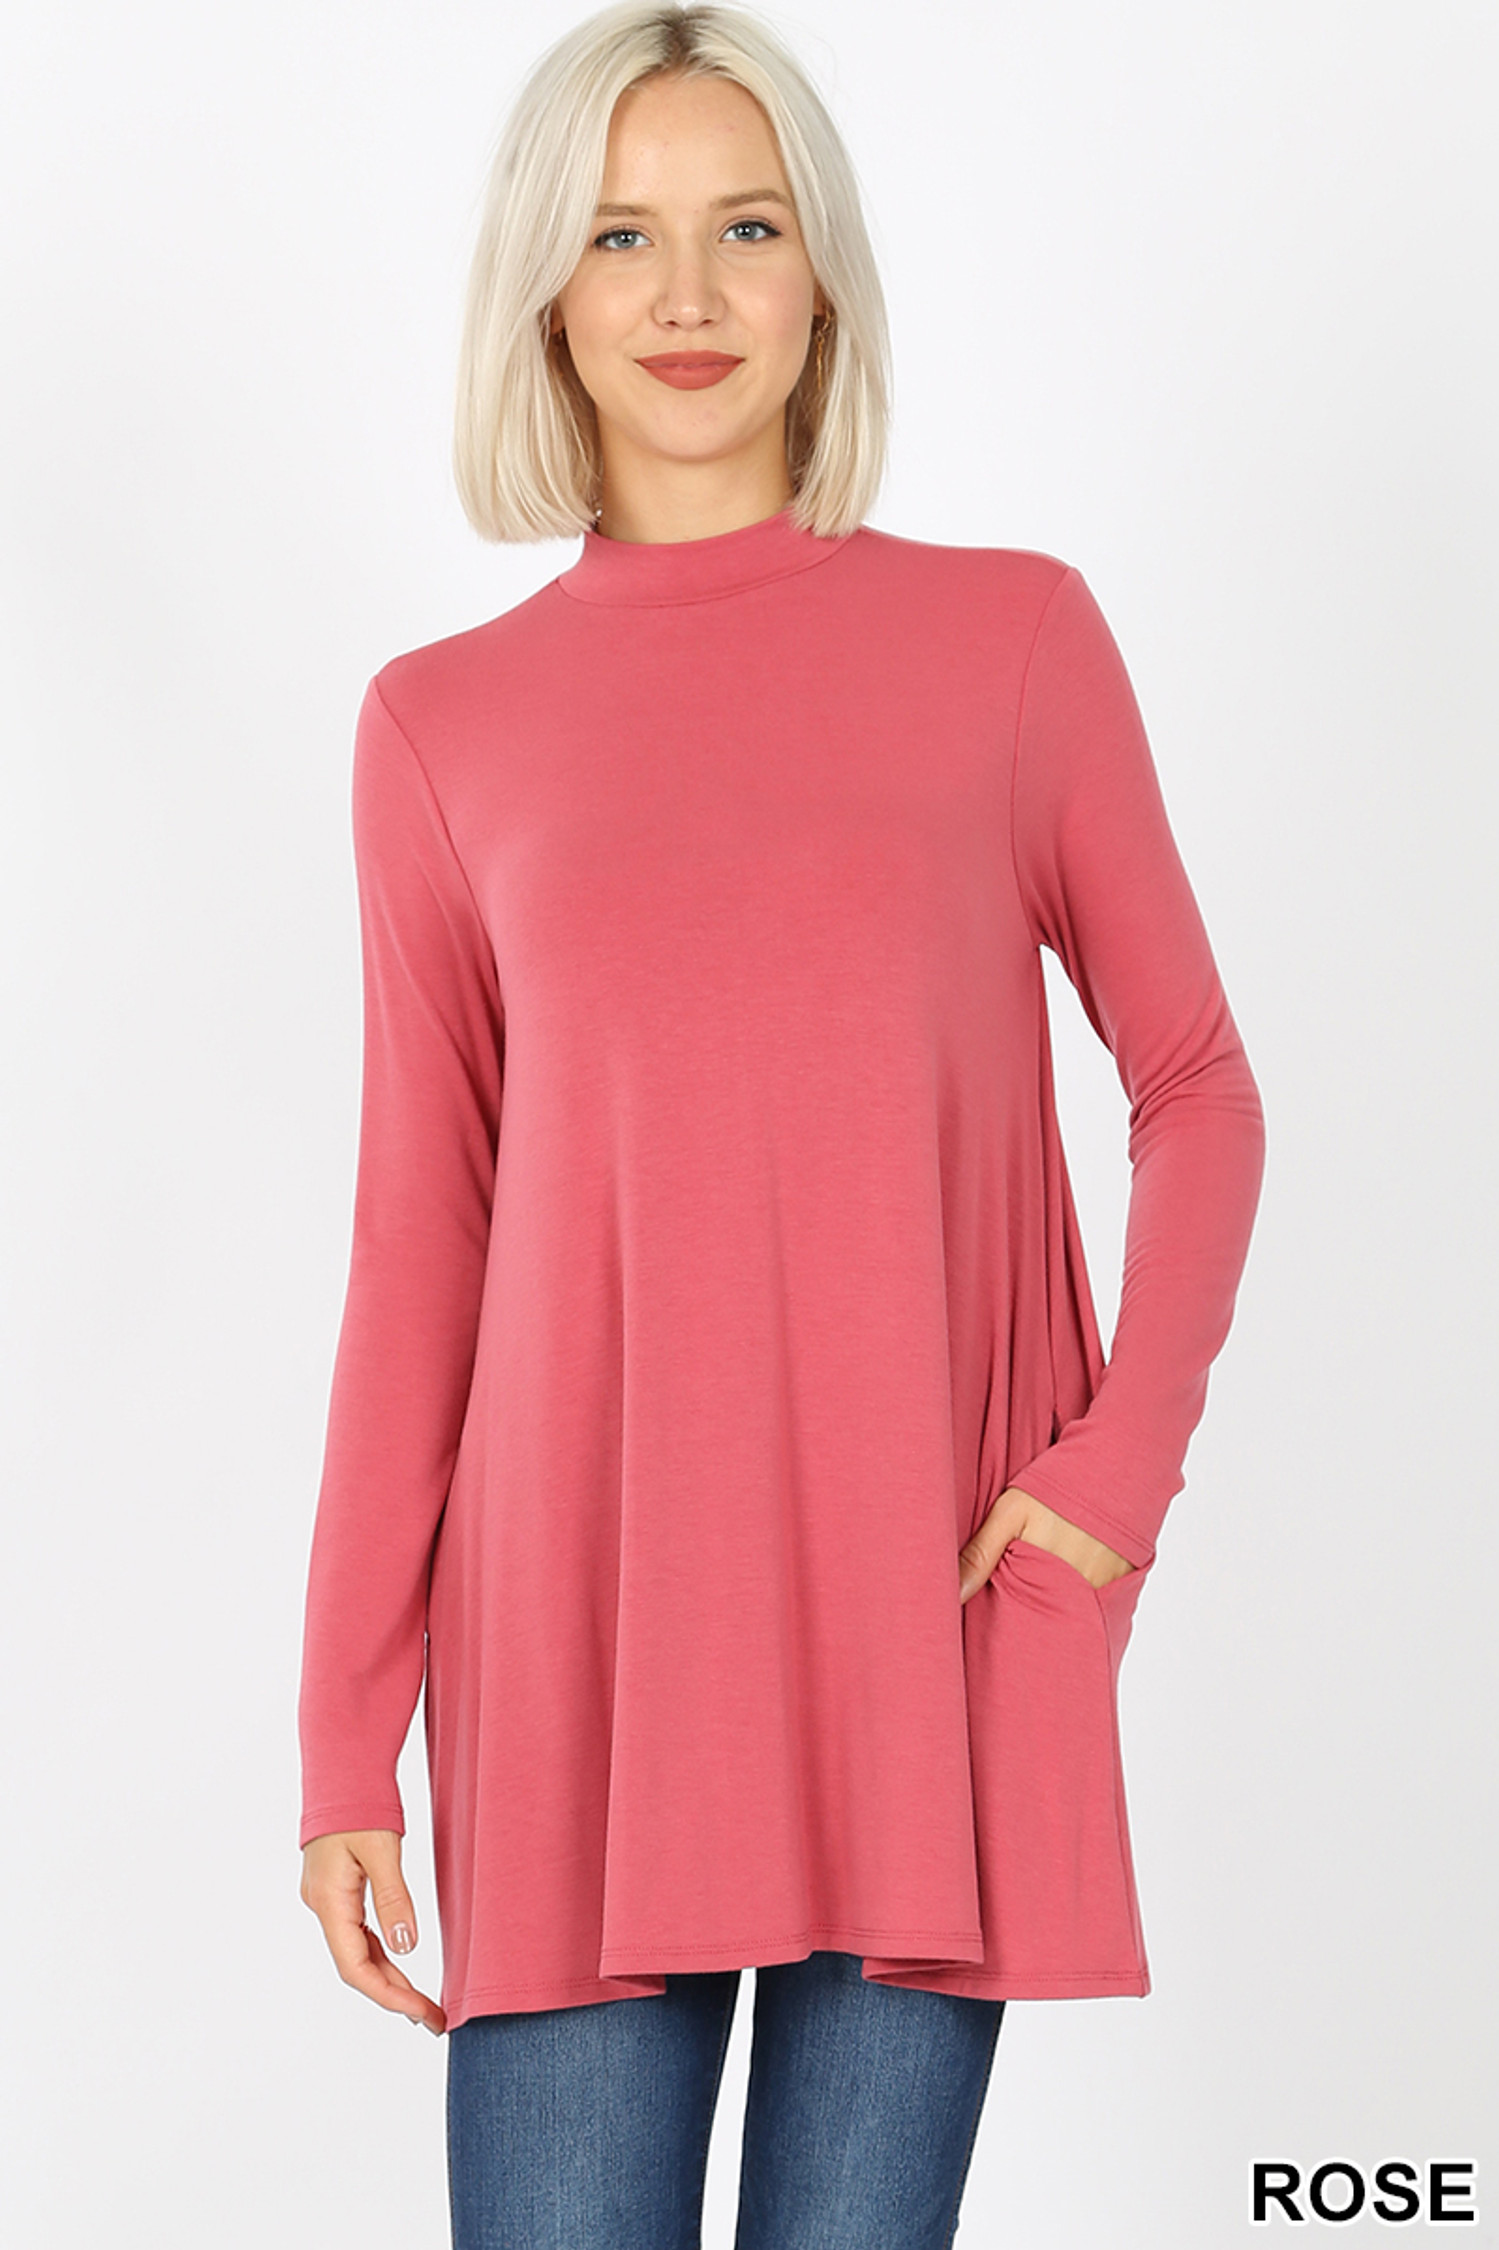 Front image of Rose Long Sleeve Mock Neck Top with Pockets